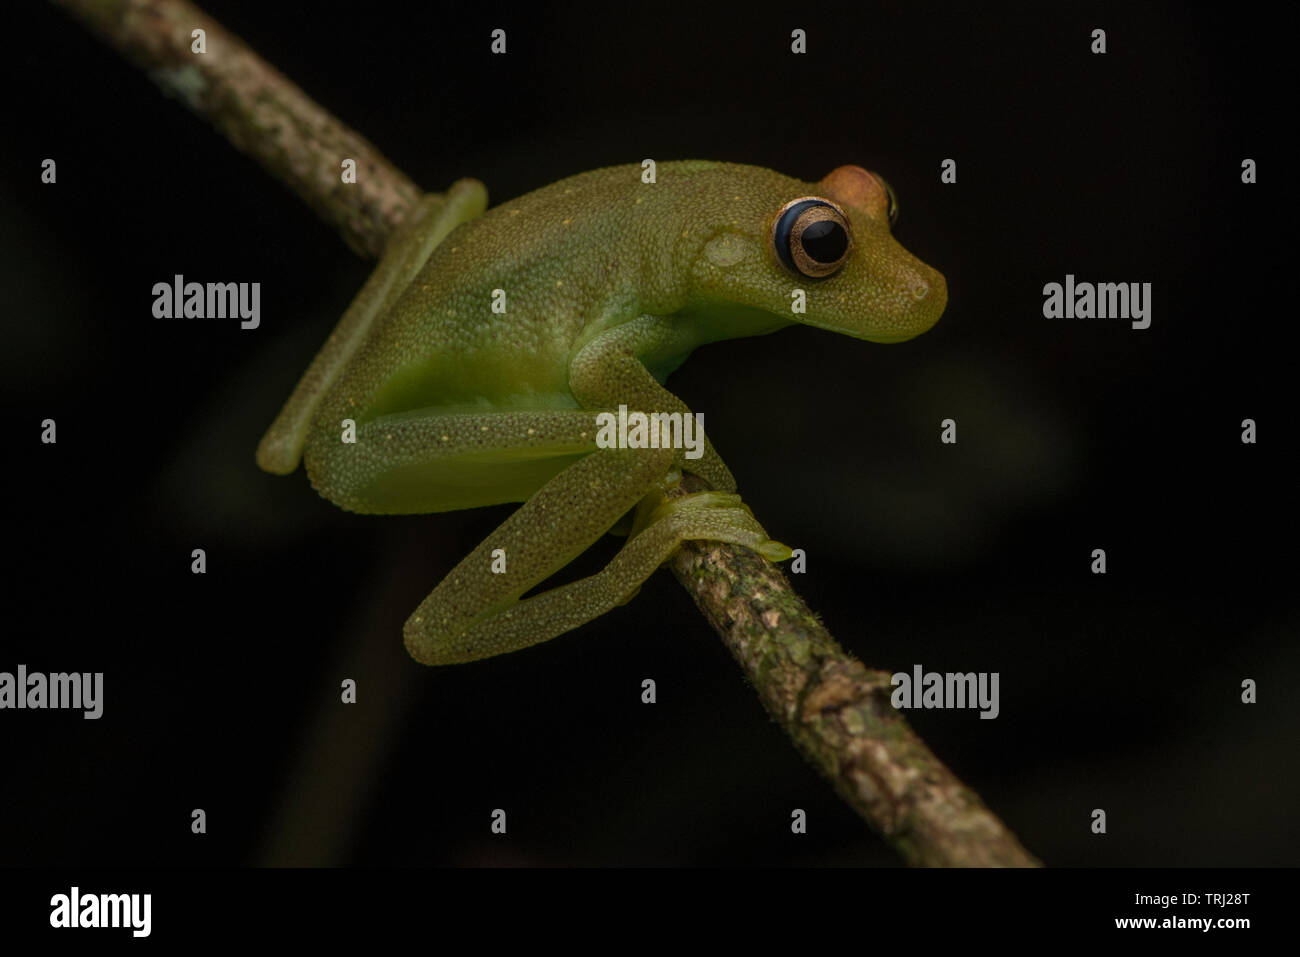 Demerara Falls tree frog (Hypsiboas cinerascens or Boana cinerascens, depending on how up to date your taxonomy is) from Yasuni national park, Ecuador. Stock Photo